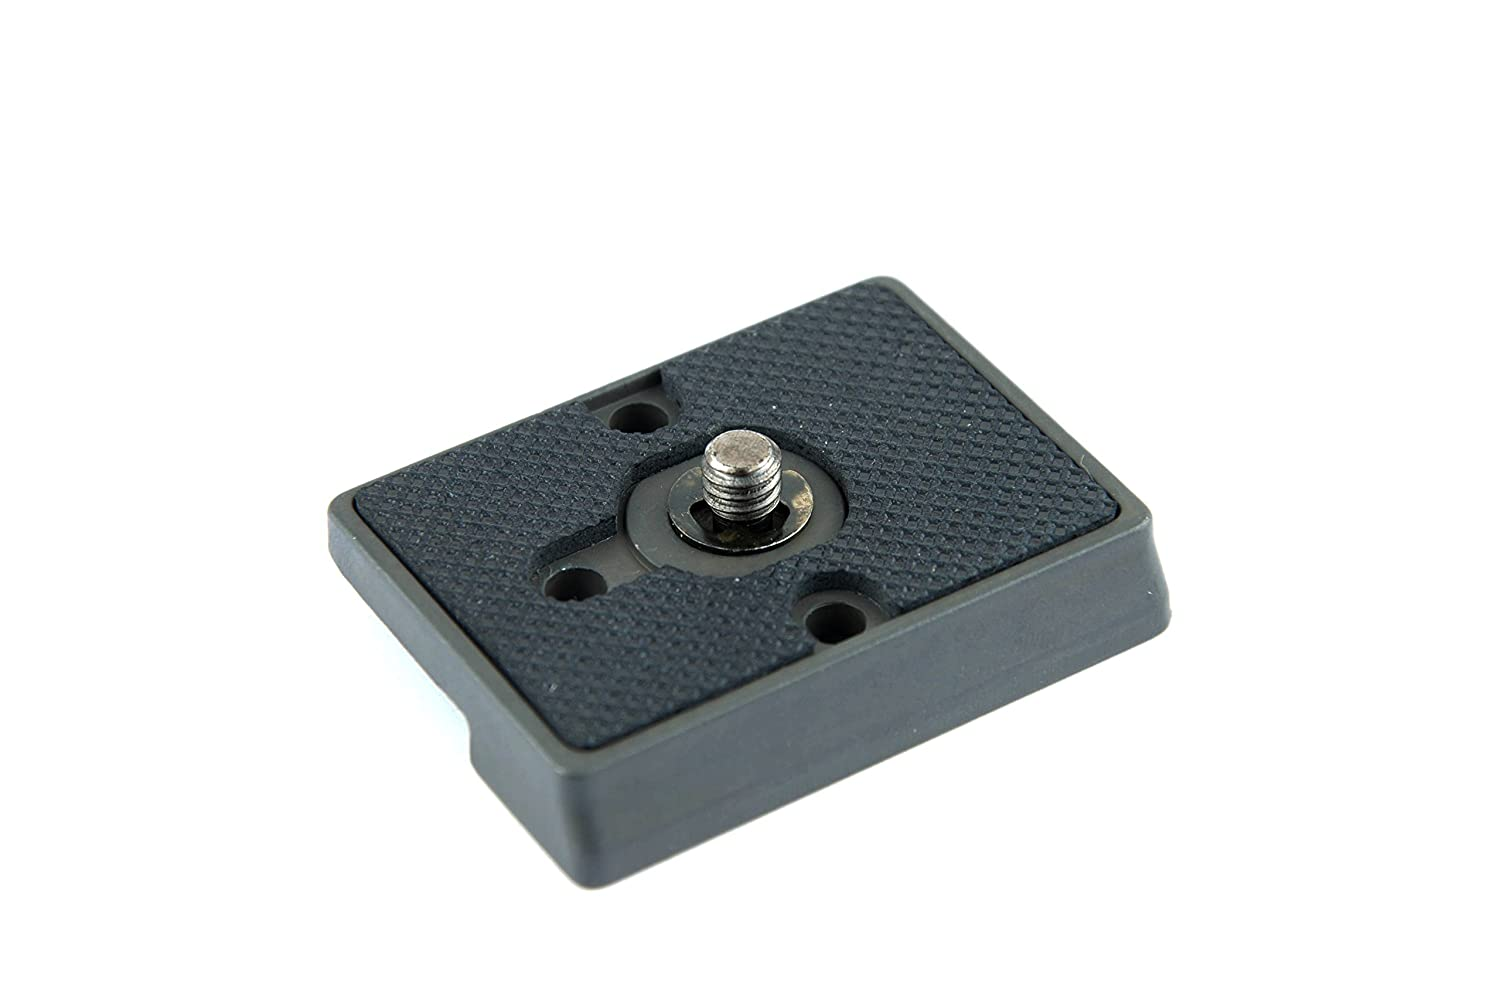 Mochalight Joyoldelf Manfrotto 200Pl-14 Rectangular Quick Release Plate with 1/4', 20 Screw for Ball Head none